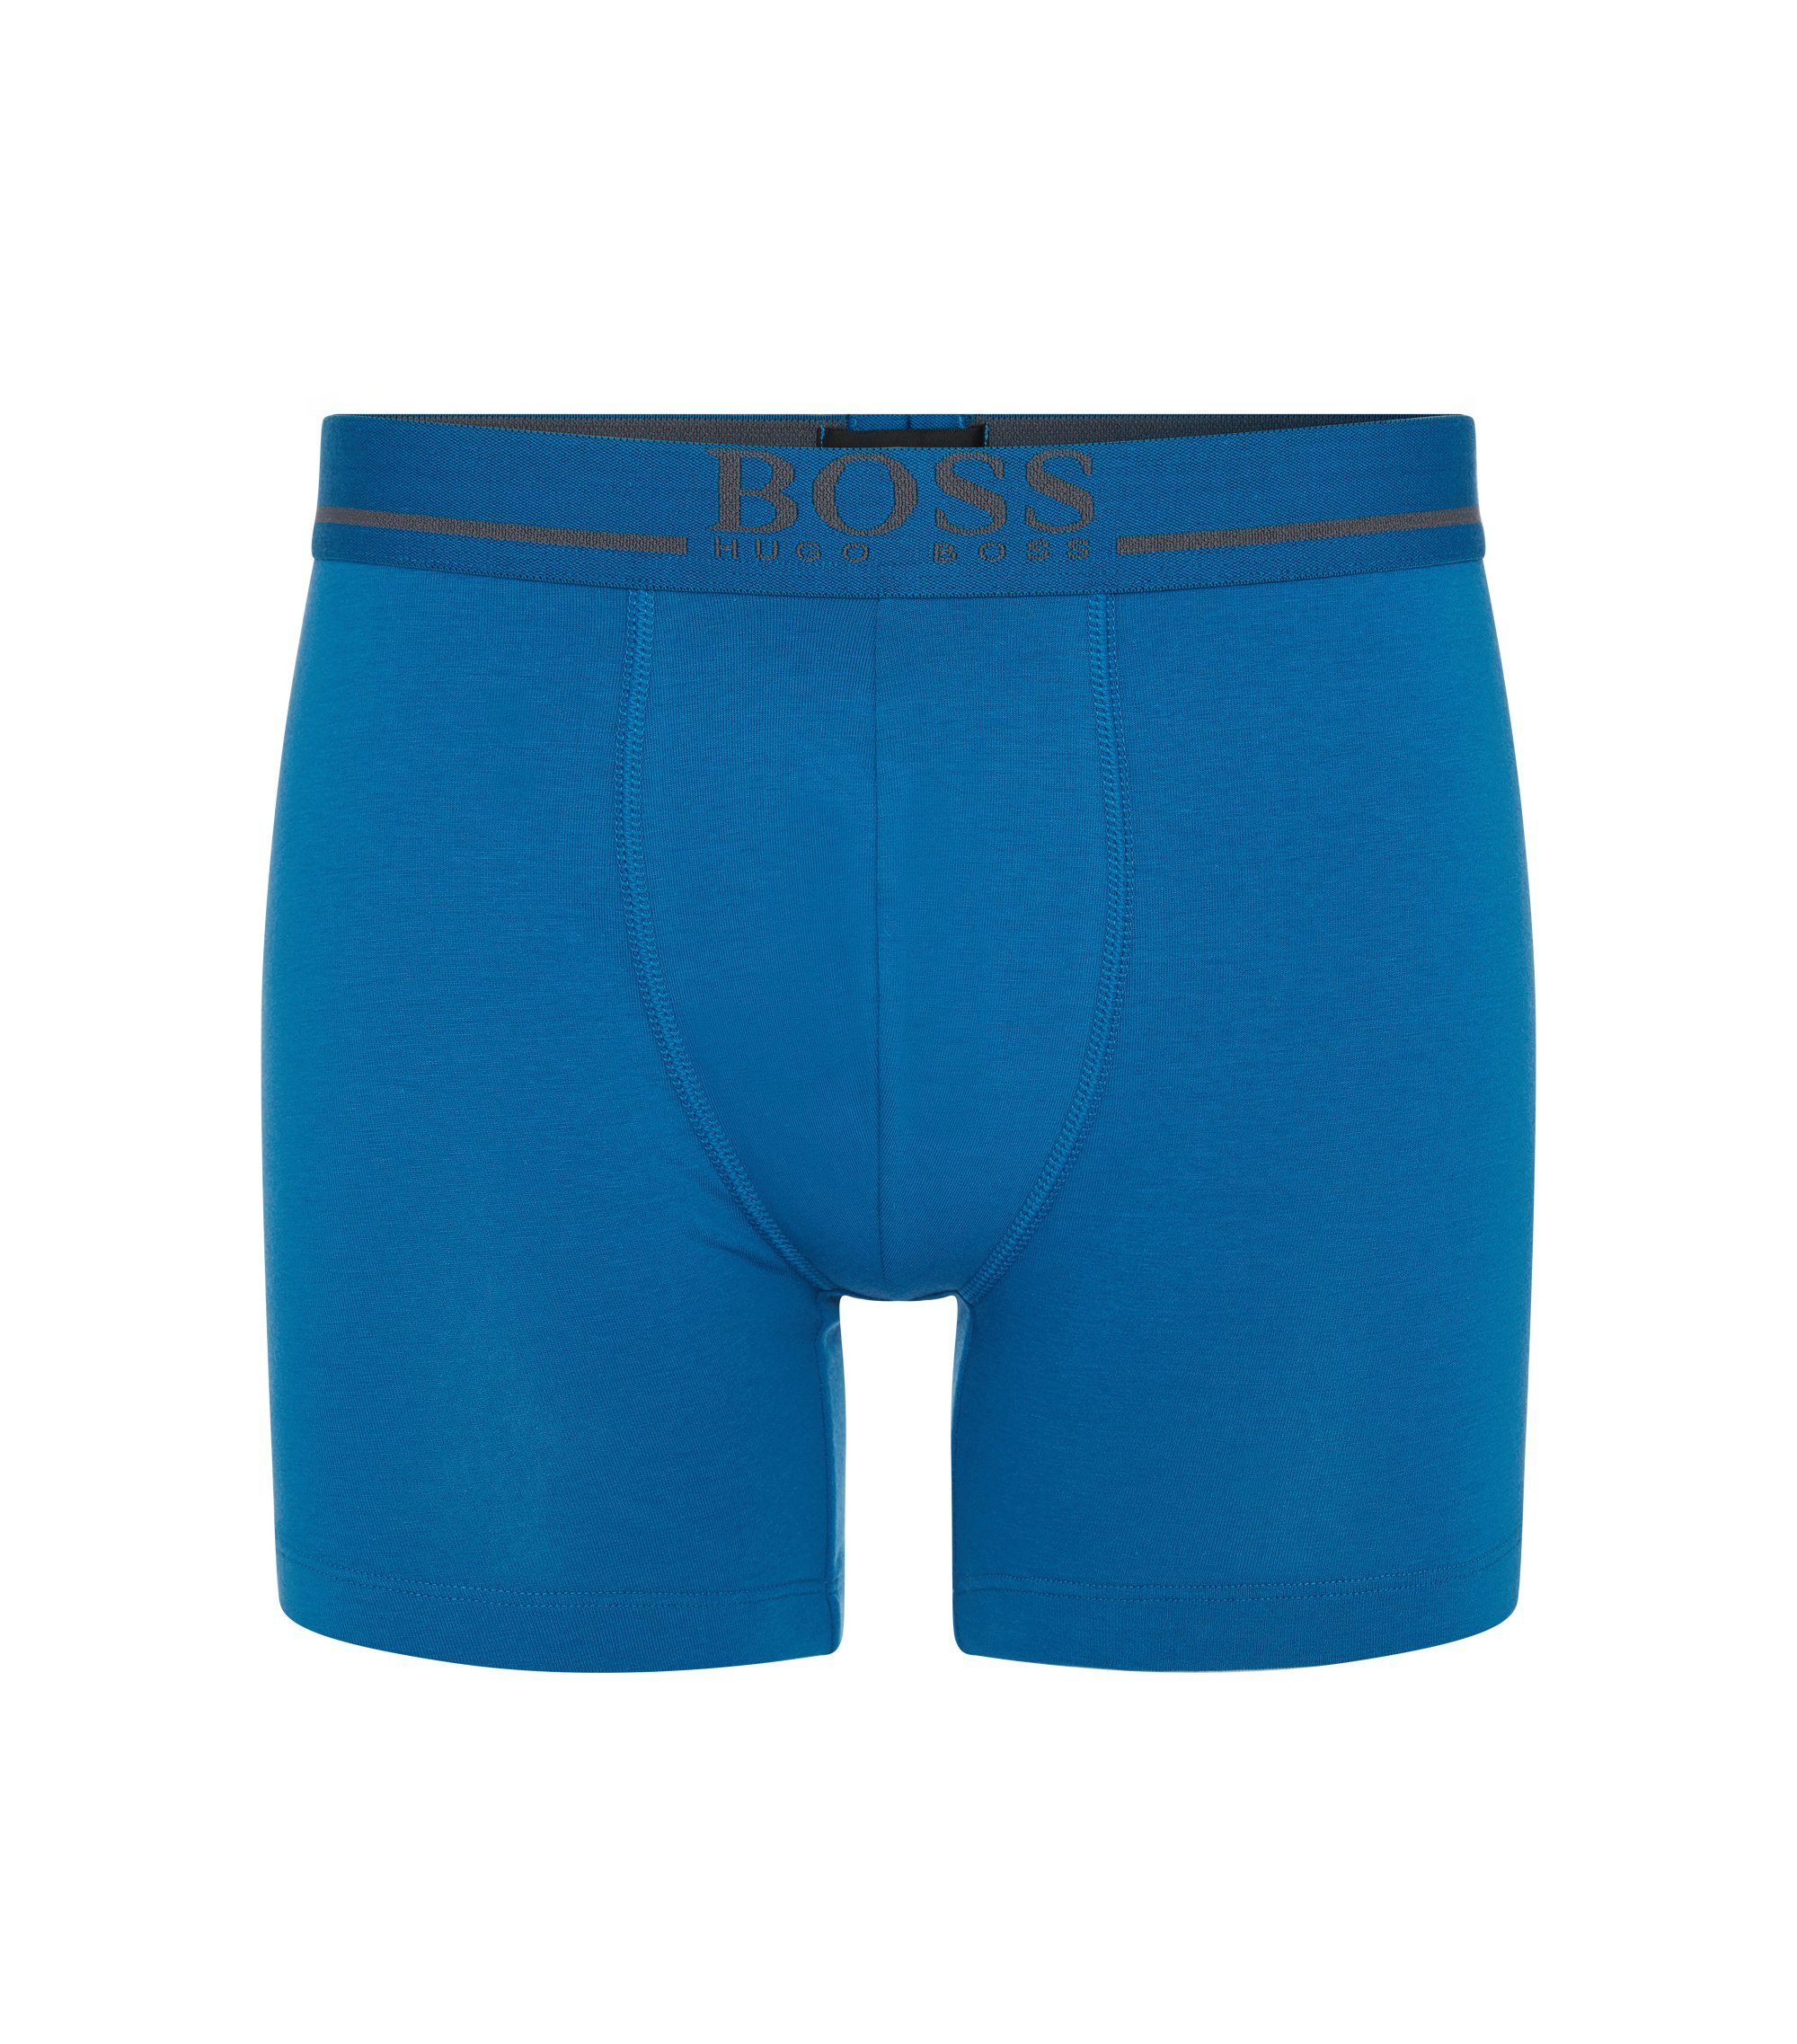 Stretch Cotton Boxer Brief | Boxer Brief 24 Logo, Blue